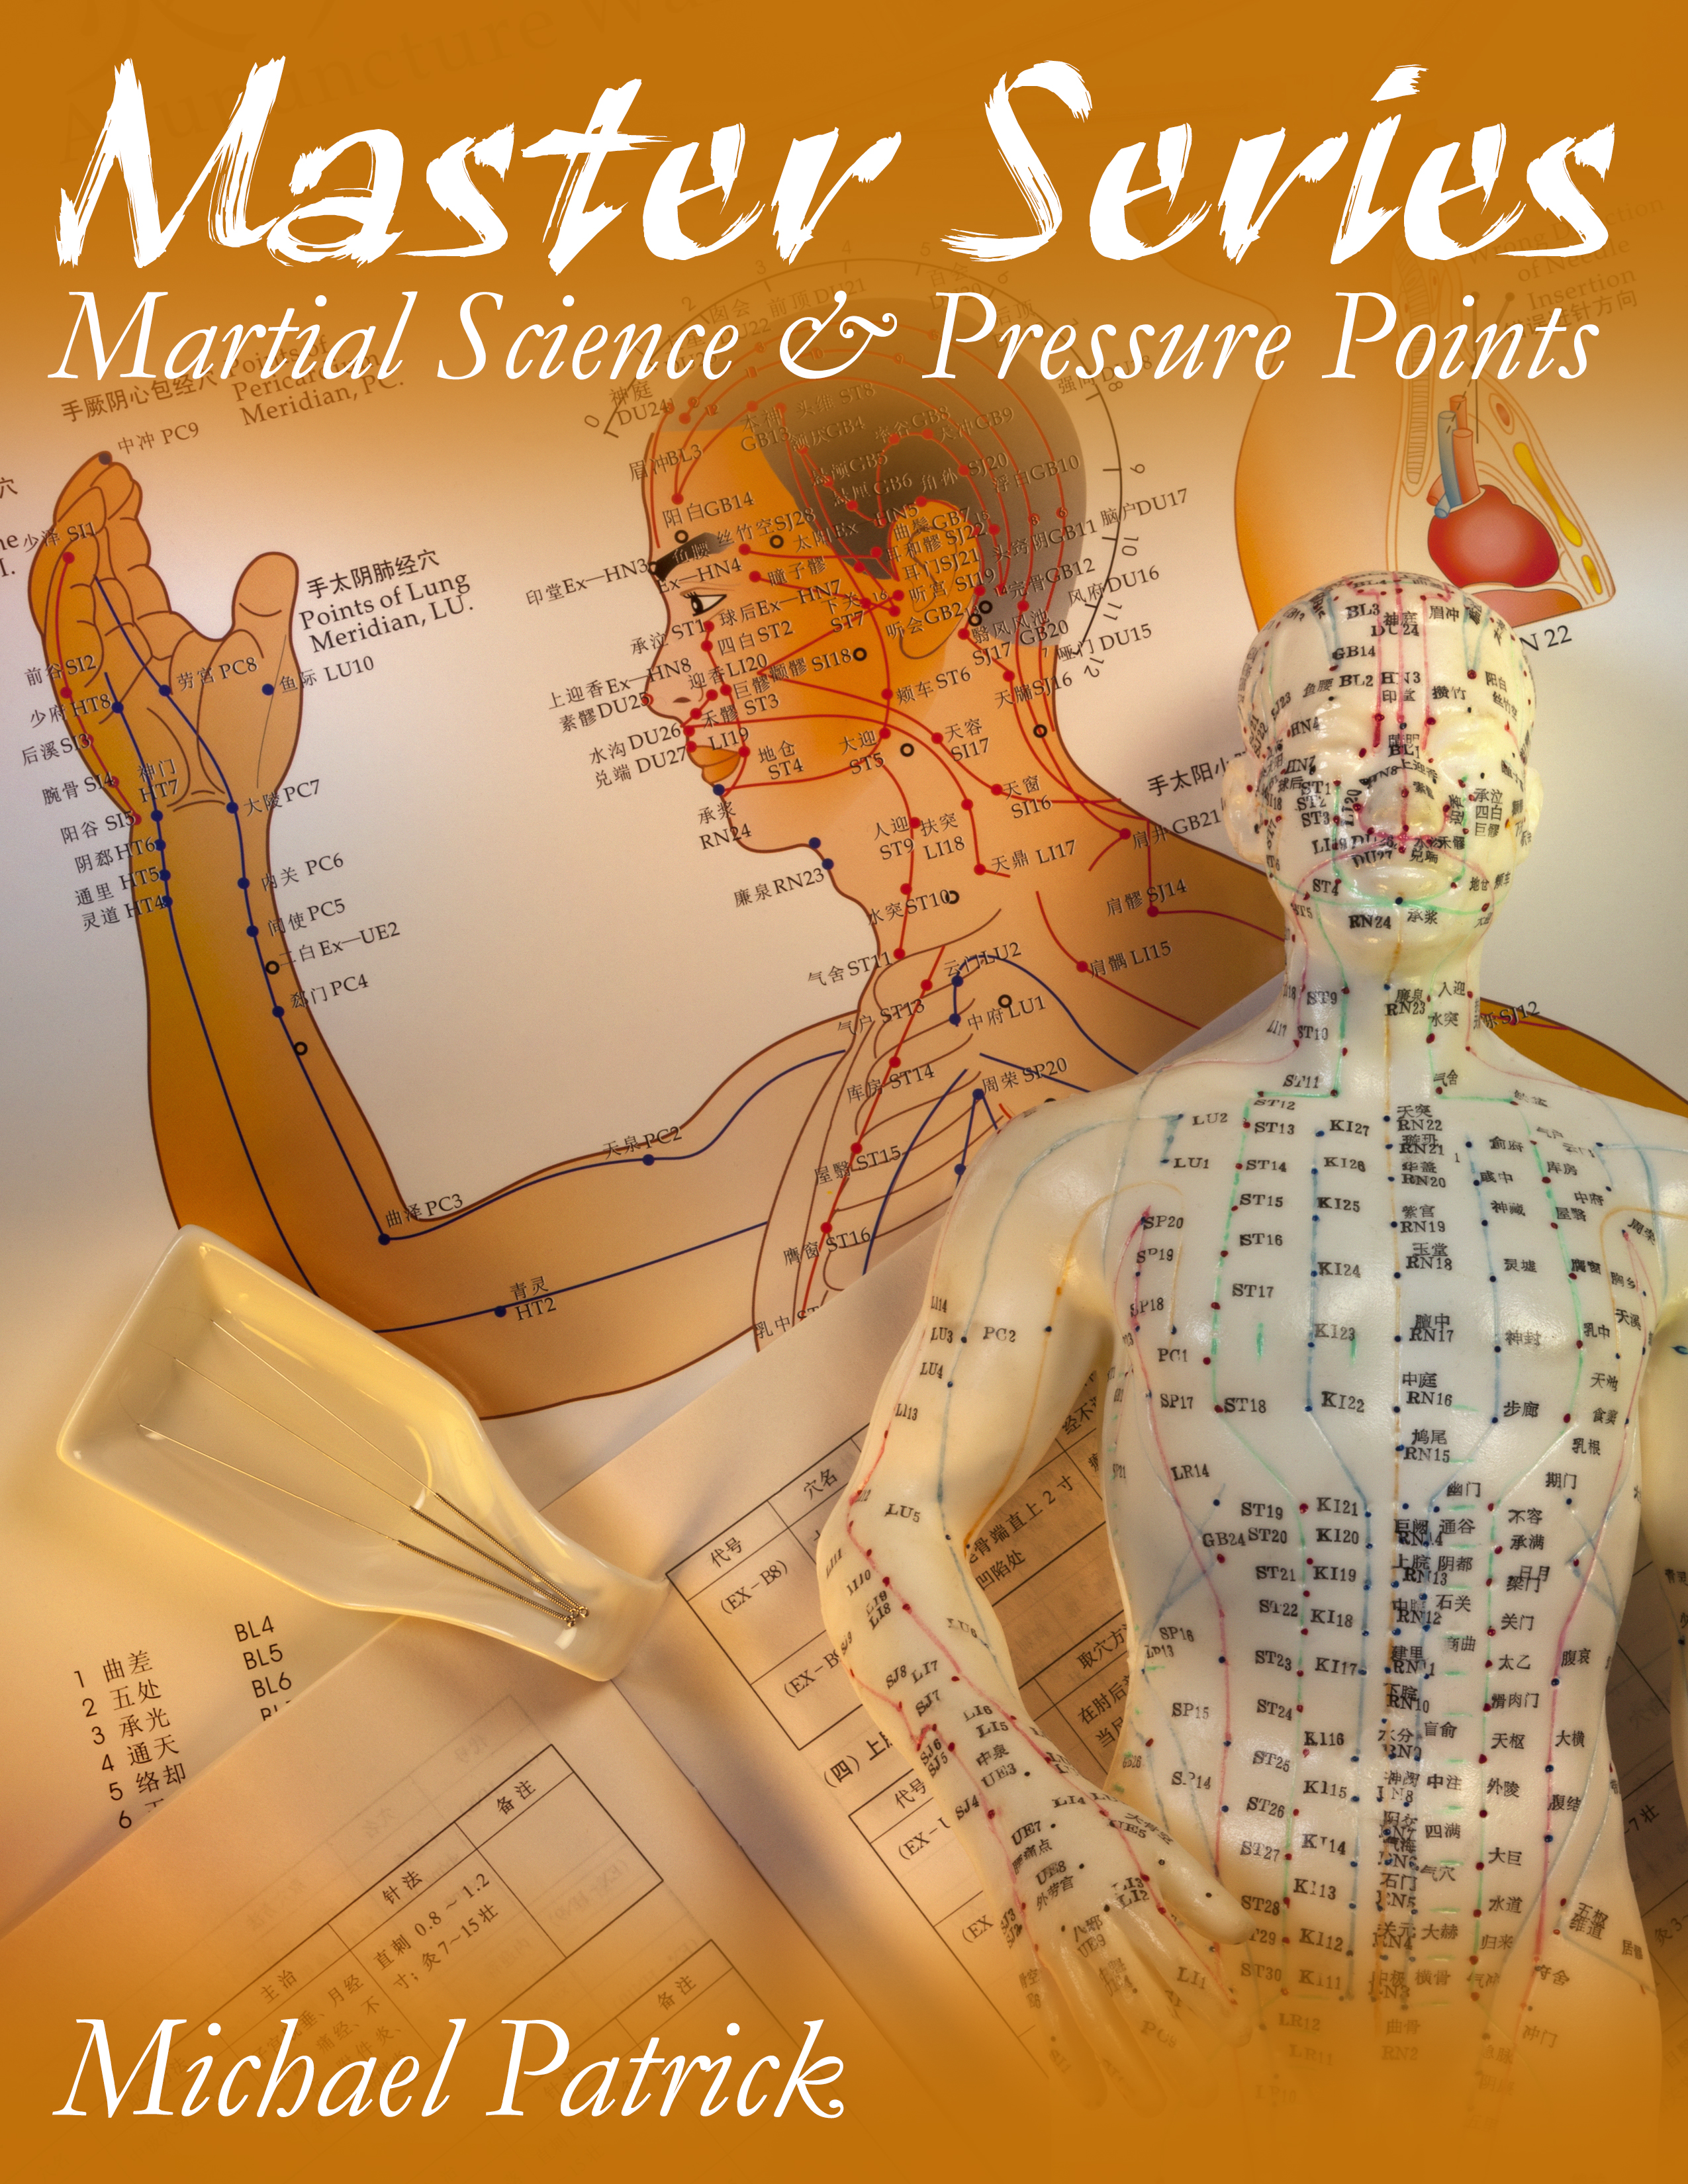 Masters Series Martial Science Pressure Points Dragon Society